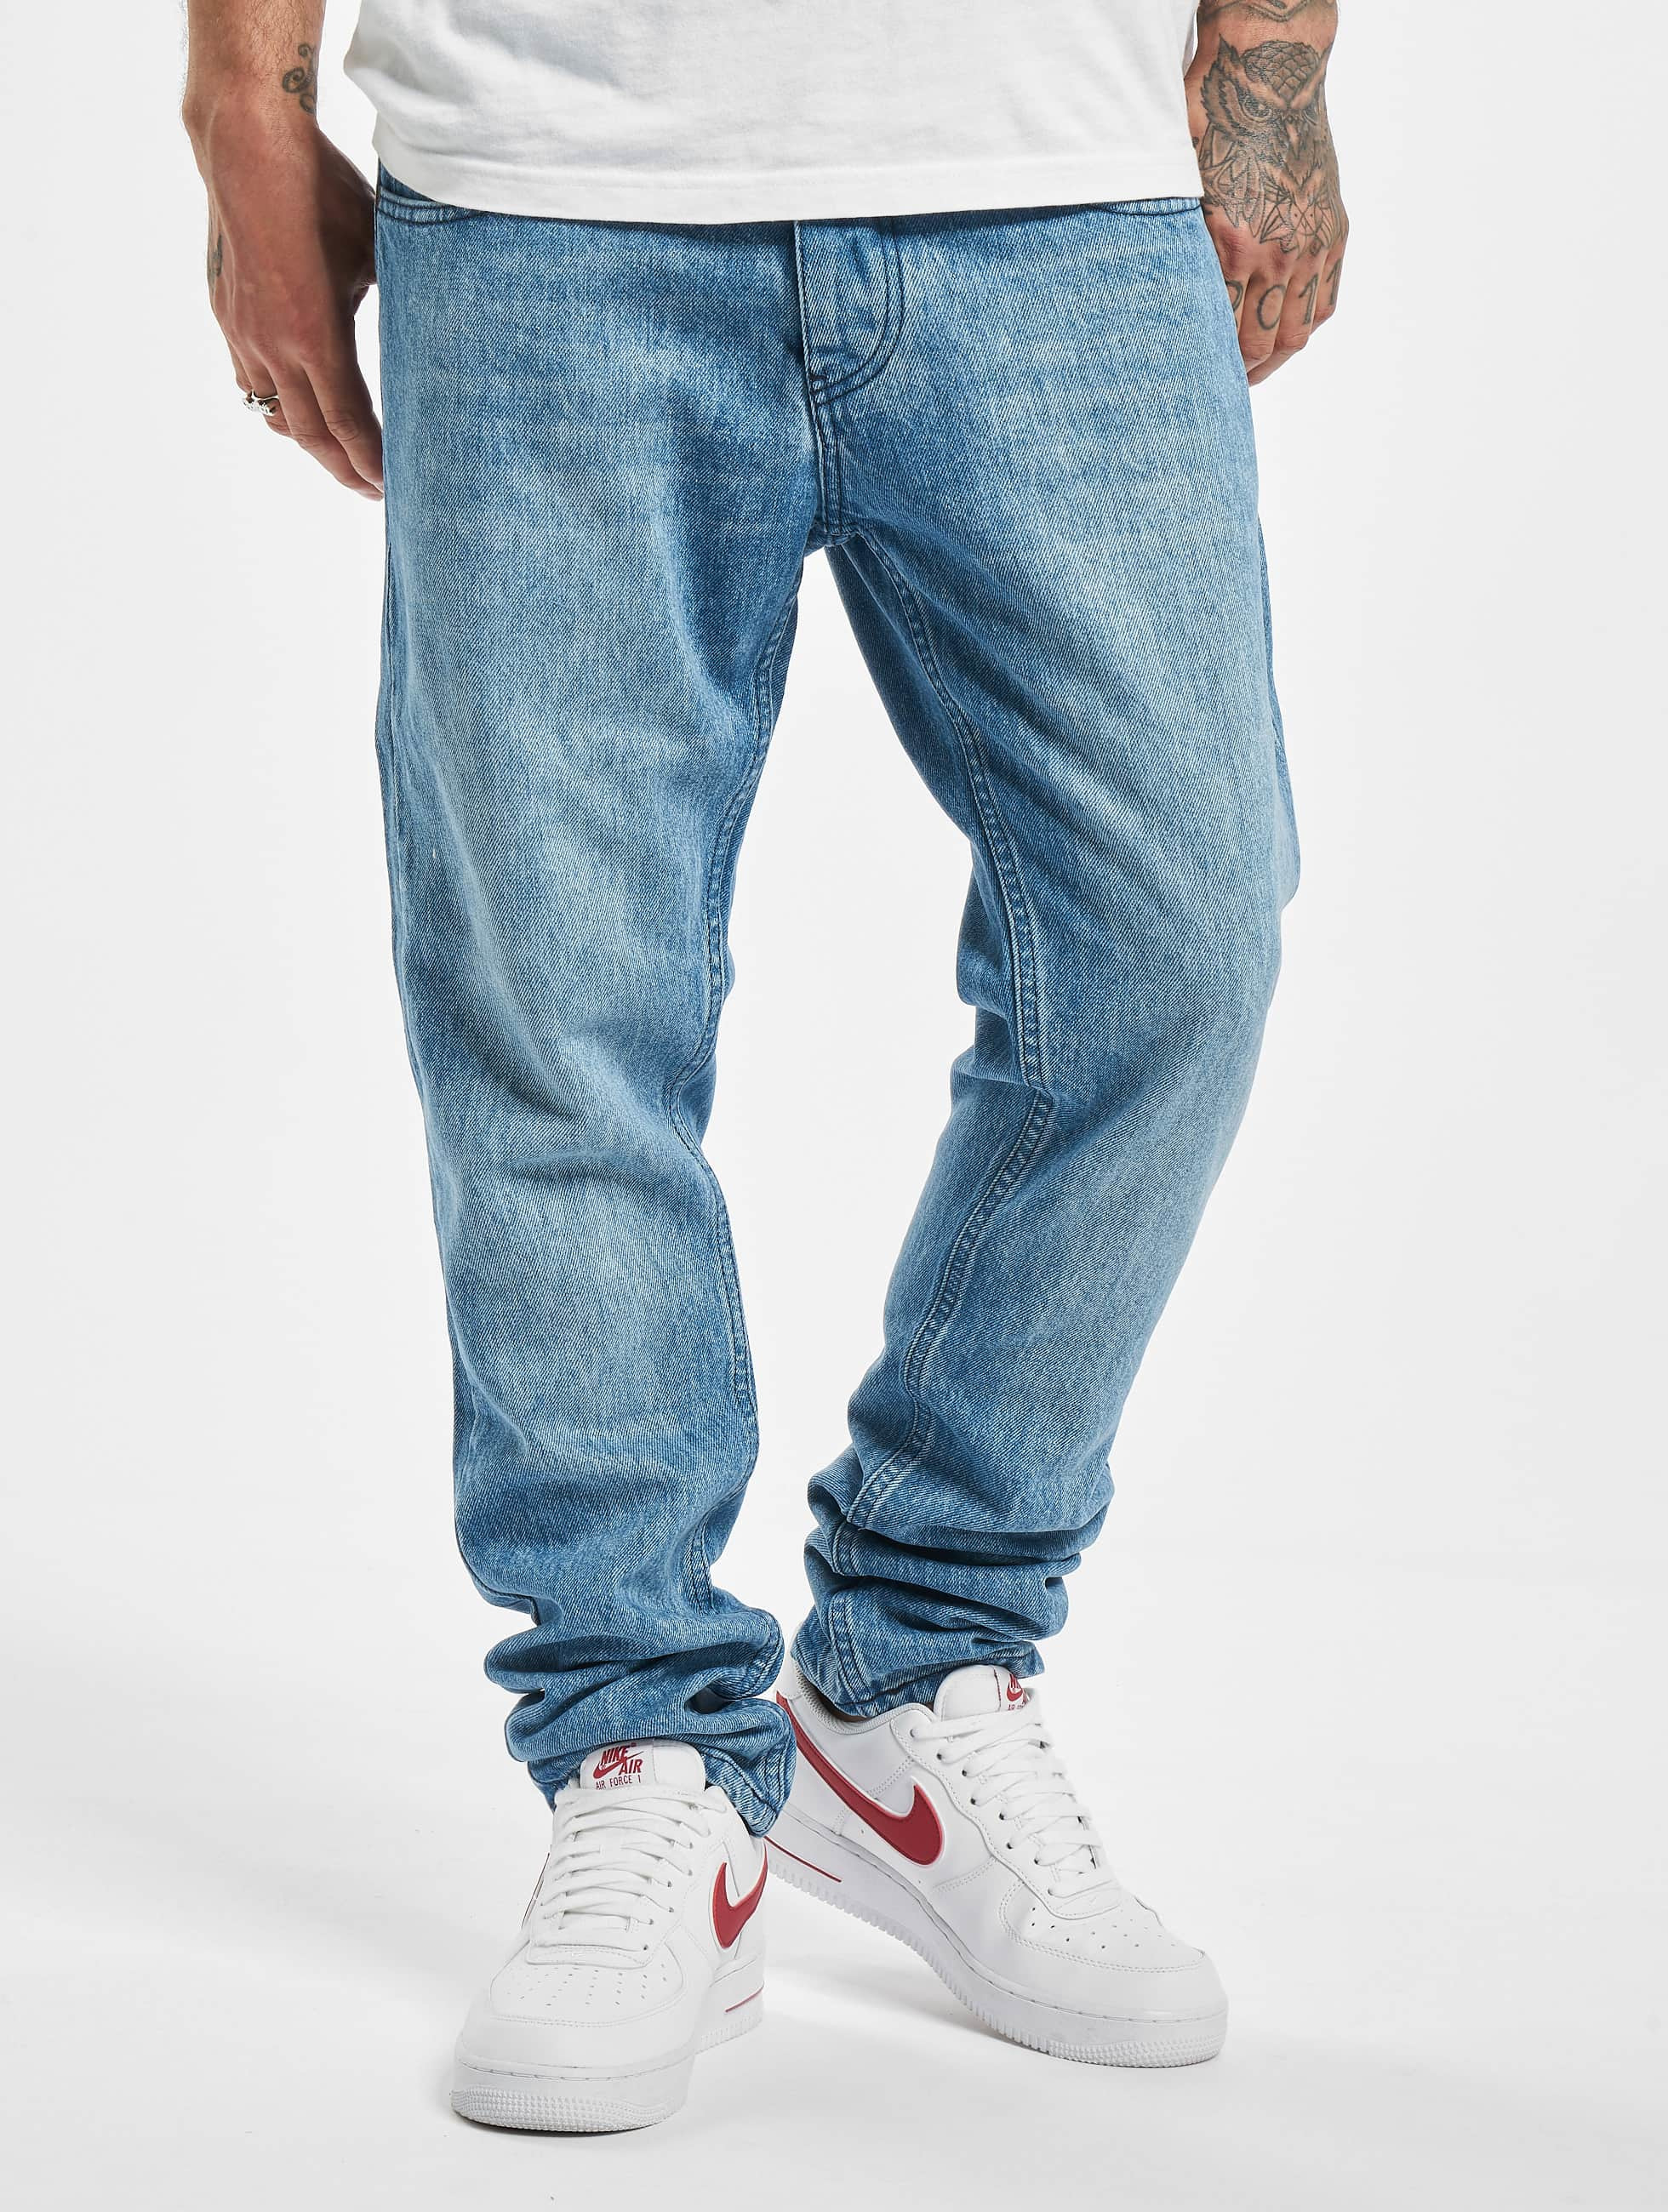 2Y / Slim Fit Jeans Theo in blue W 32